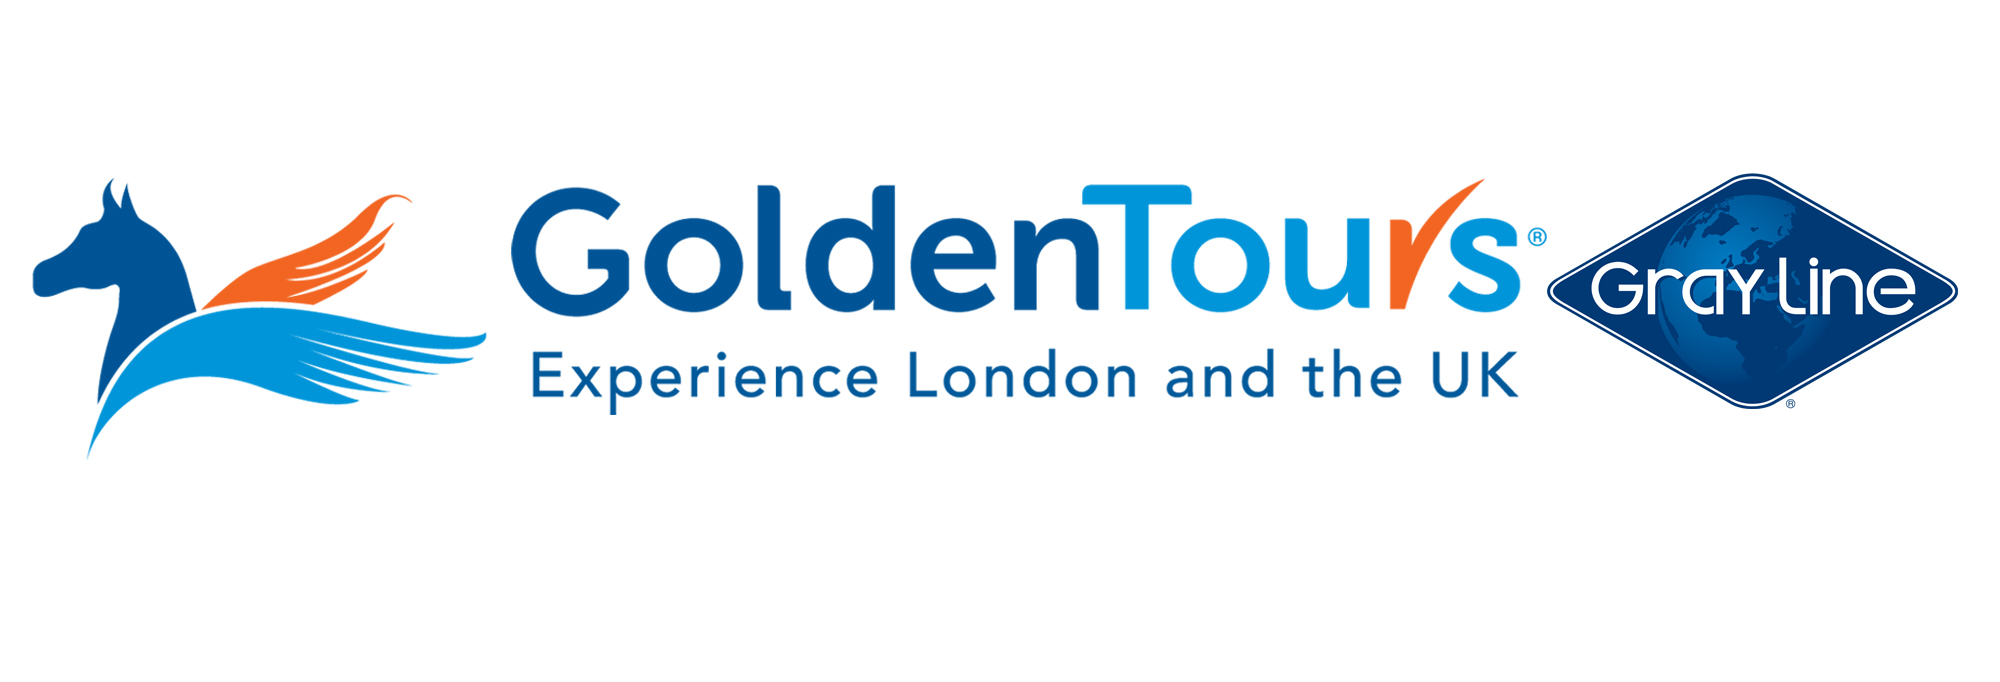 London Tours | Visit Stonehenge, Windsor, Paris and Oxford | Golden Tours